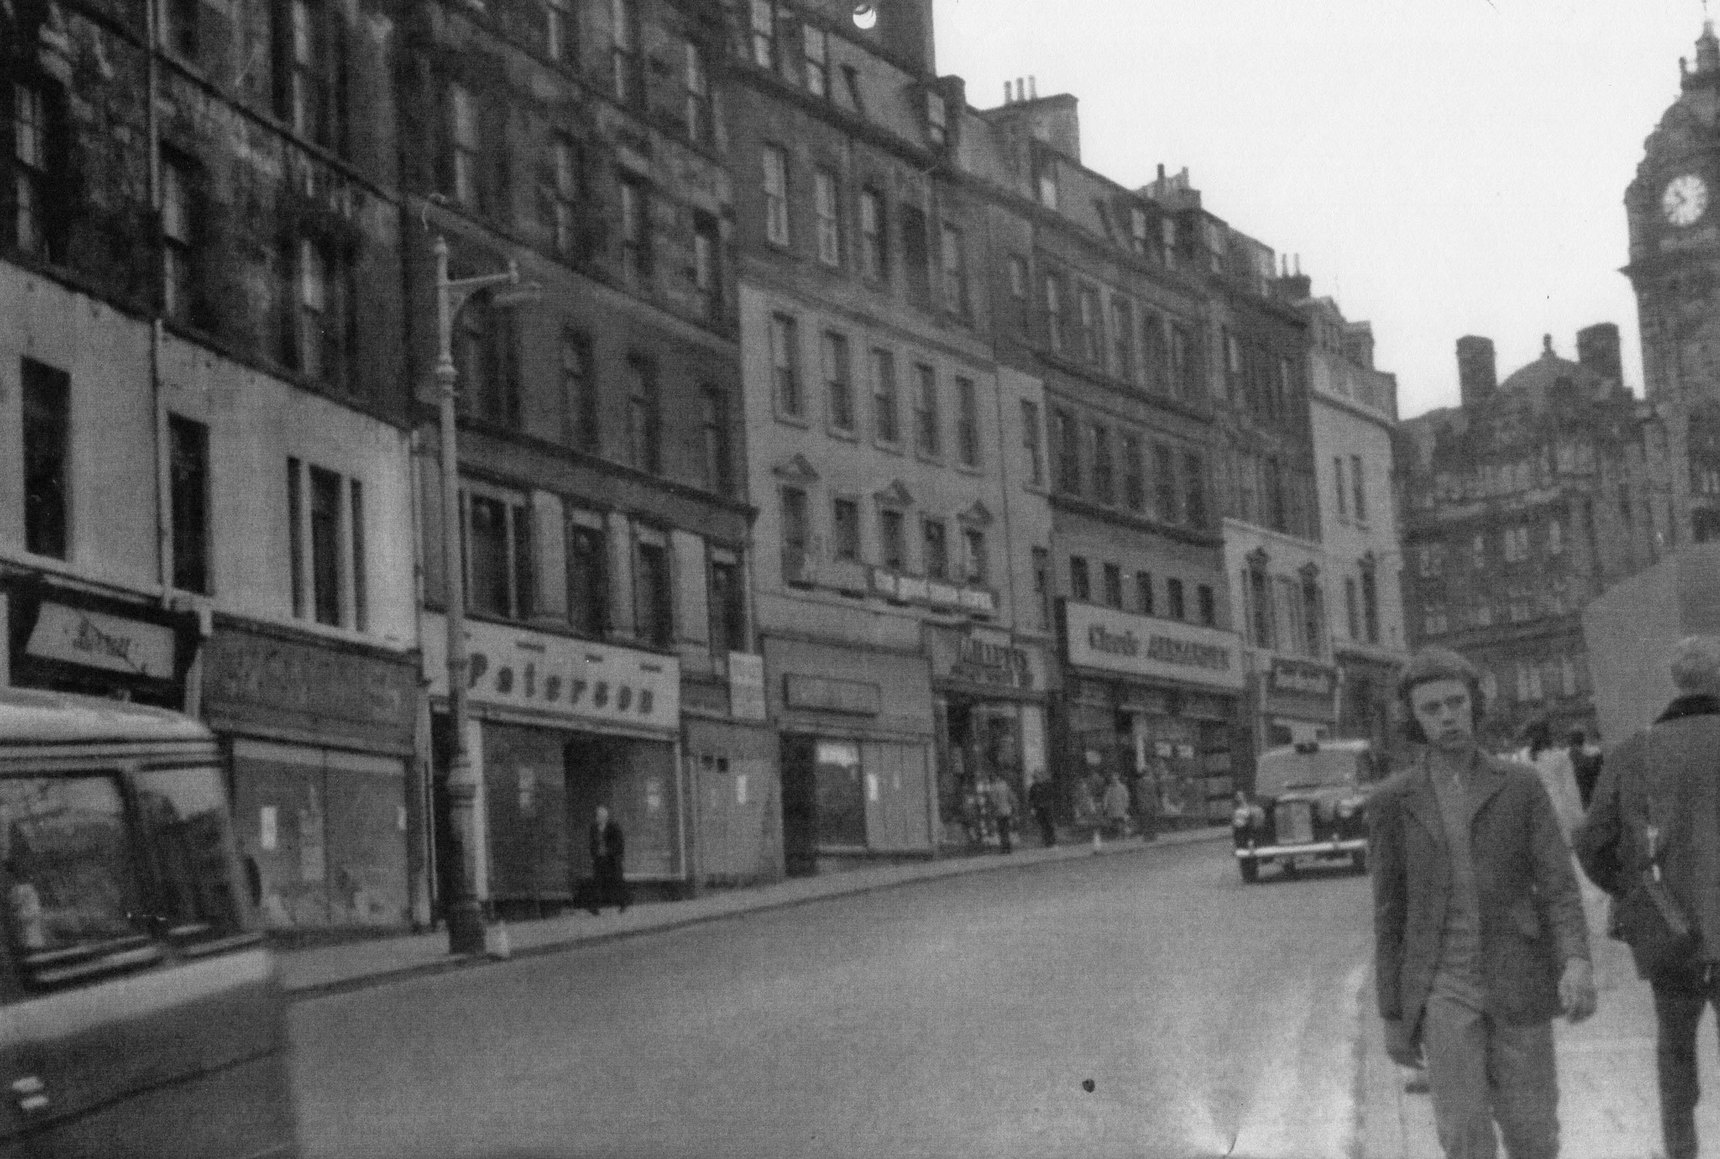 Leith Street Looking Up Toward North British Hotel 1960s